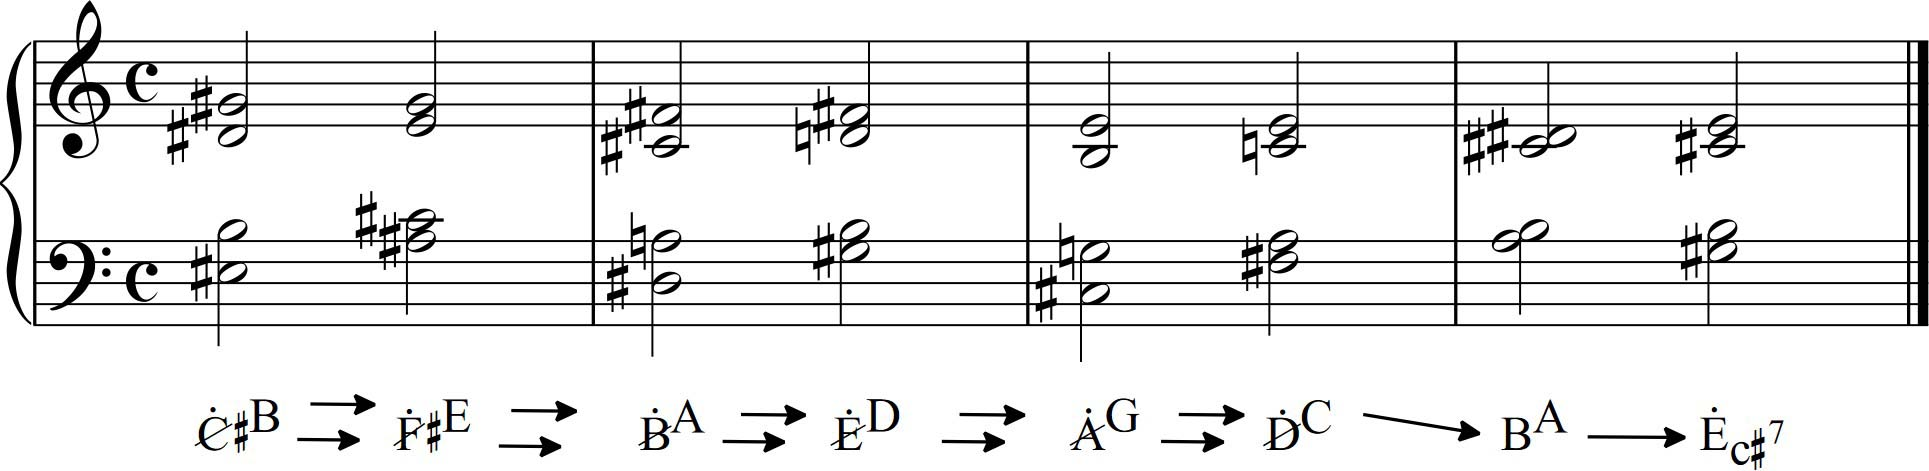 Examples of harmonic progressions with homotonic relaxions these dominant chords with two fundamentals also link well with the dissonant augmented chords type ce since it is the resulting chord if we make a htonal hexwebz Choice Image